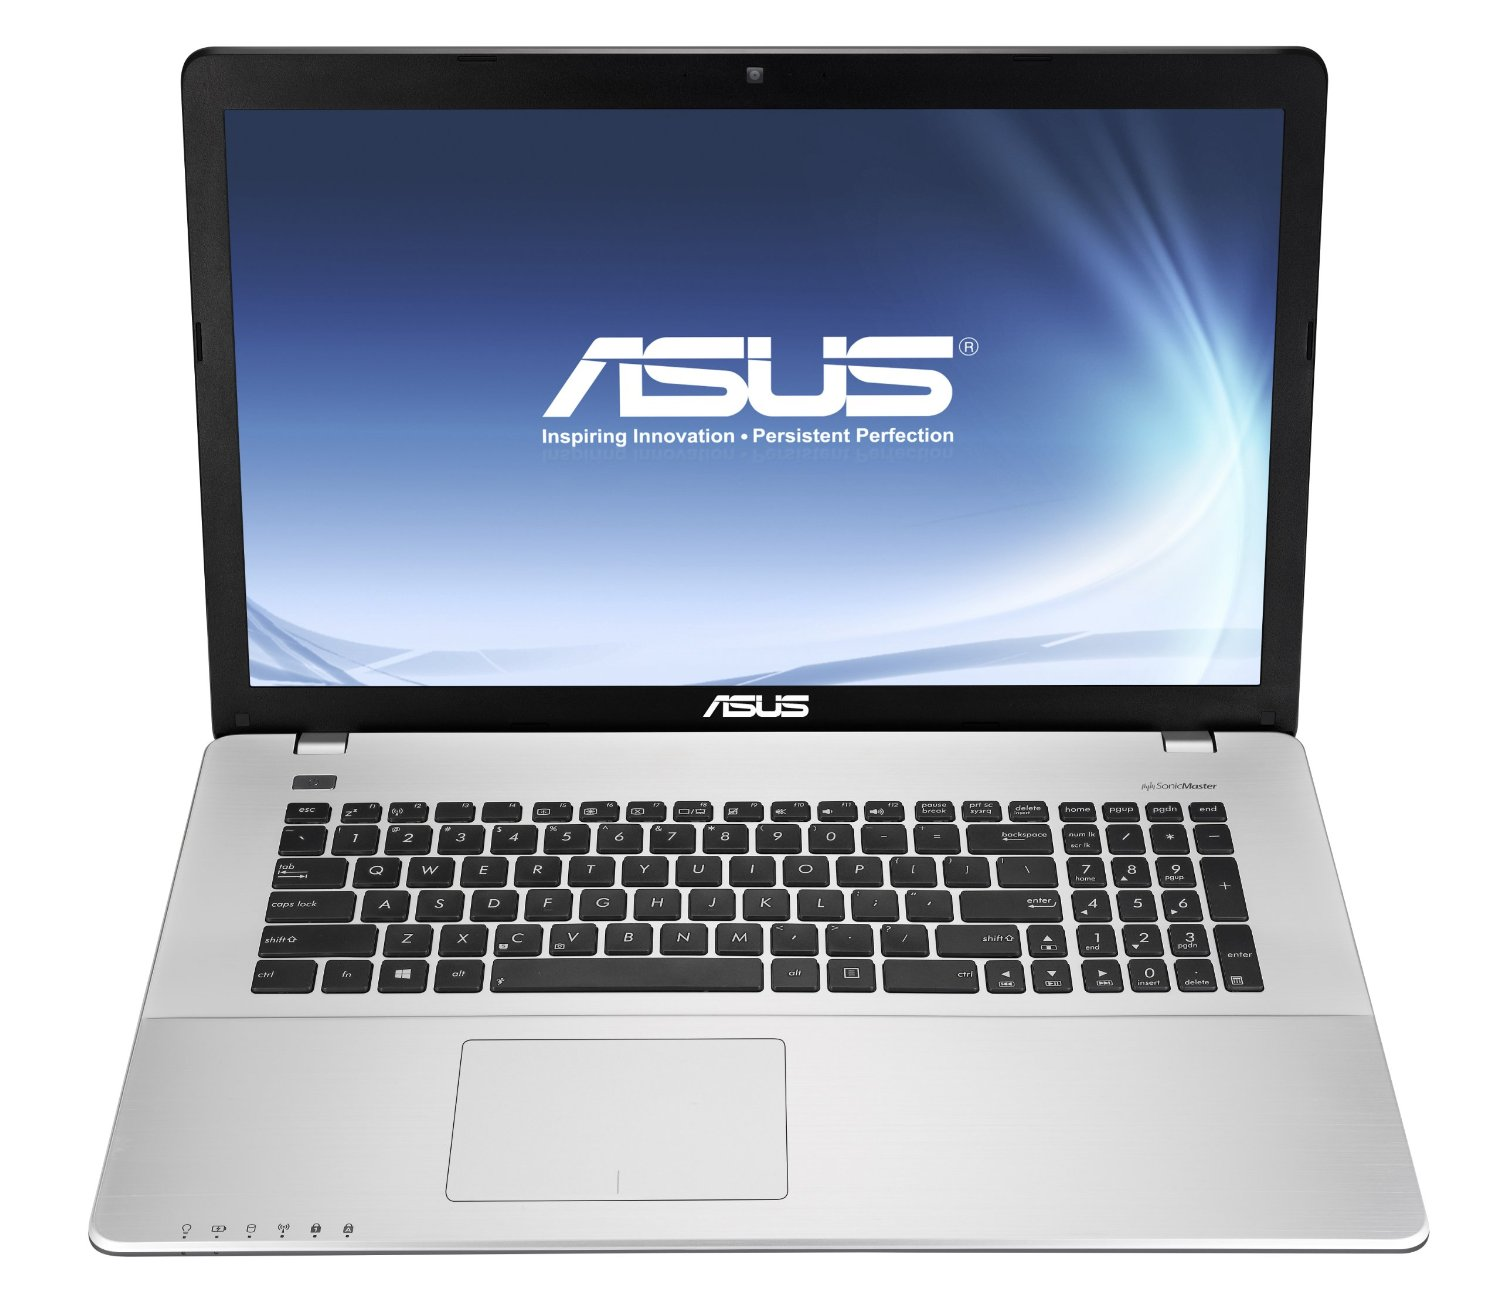 Asus - Laptop reviews